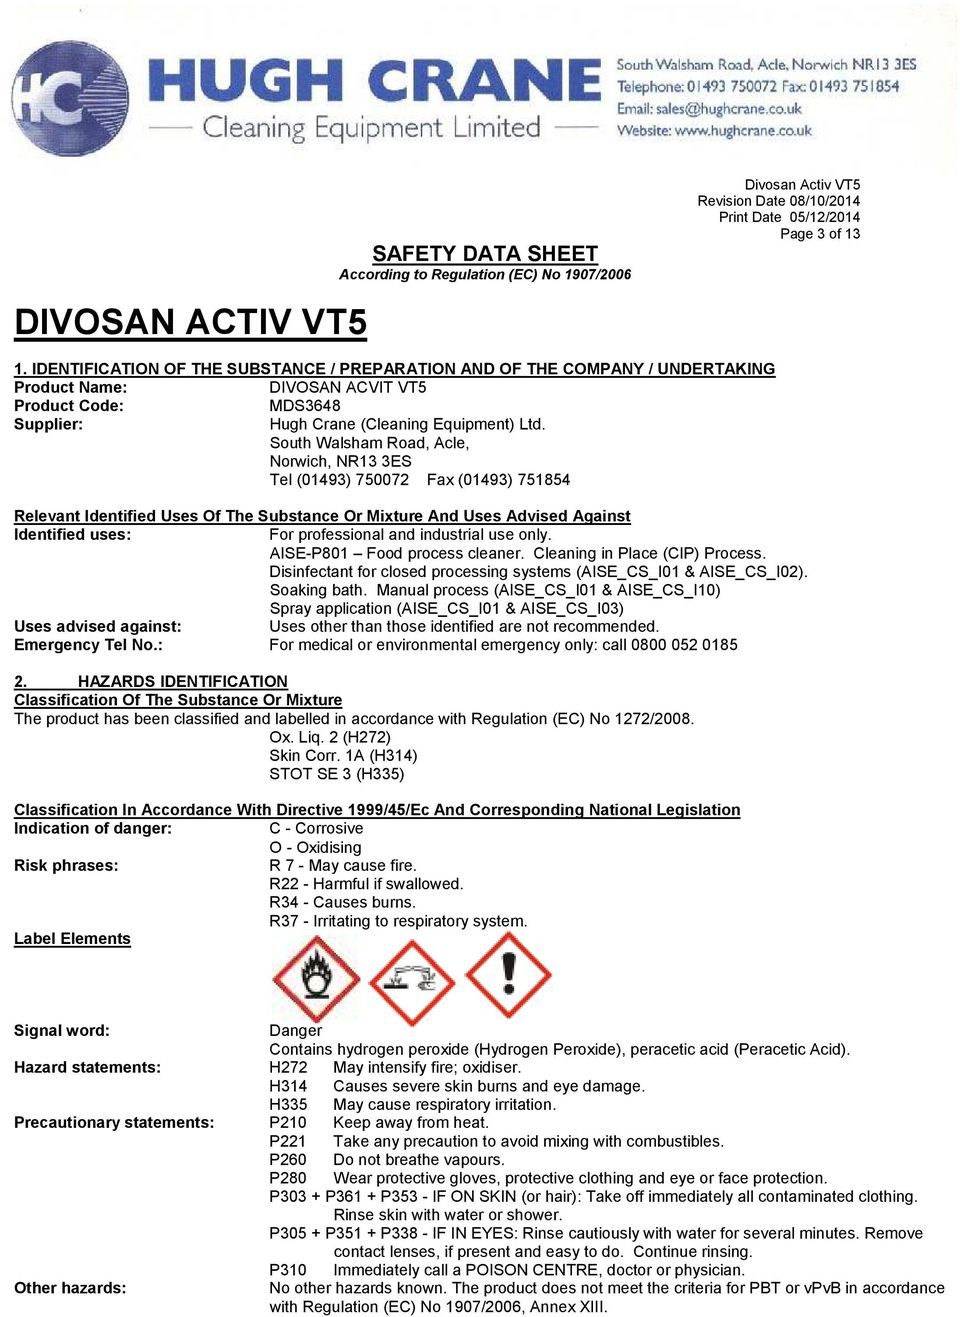 South Walsham Road, Acle, Norwich, NR13 3ES Tel (01493) 750072 Fax (01493) 751854 Relevant Identified Uses Of The Substance Or Mixture And Uses Advised Against Identified uses: For professional and